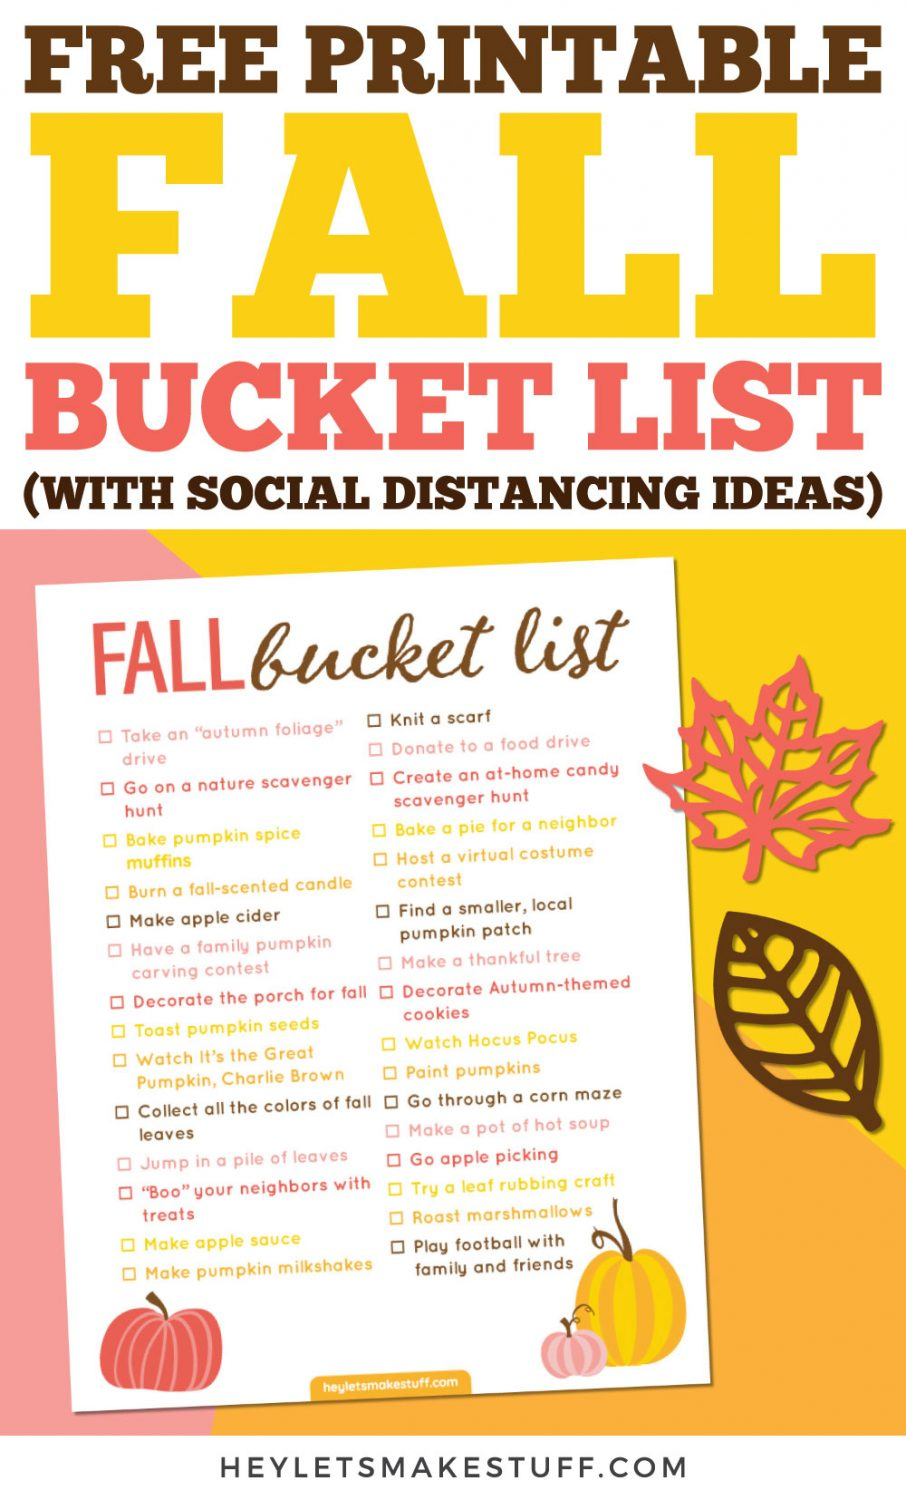 Free printable fall bucket list (with social distancing ideas) pin image